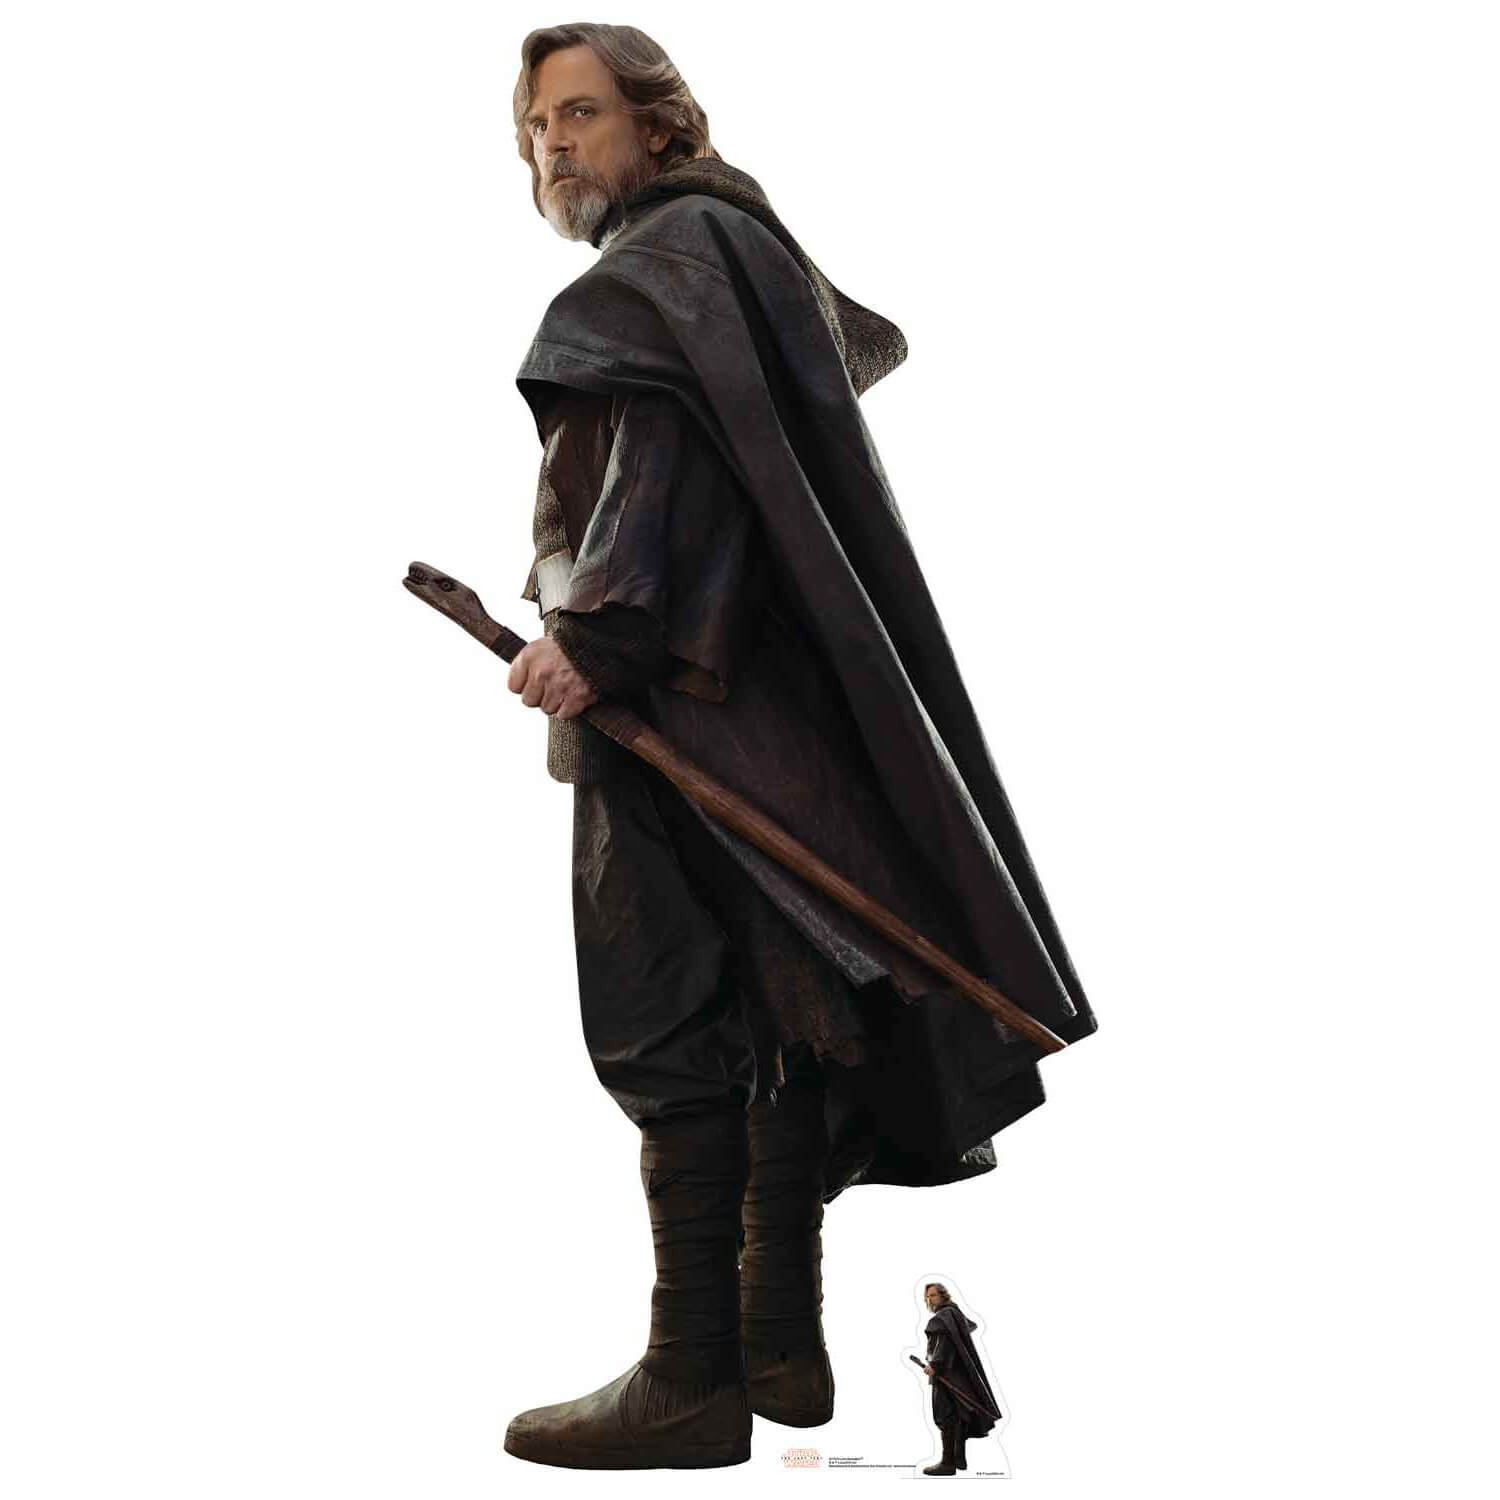 Star Wars: The Last Jedi Luke Skywalker Life-Size Cut Out